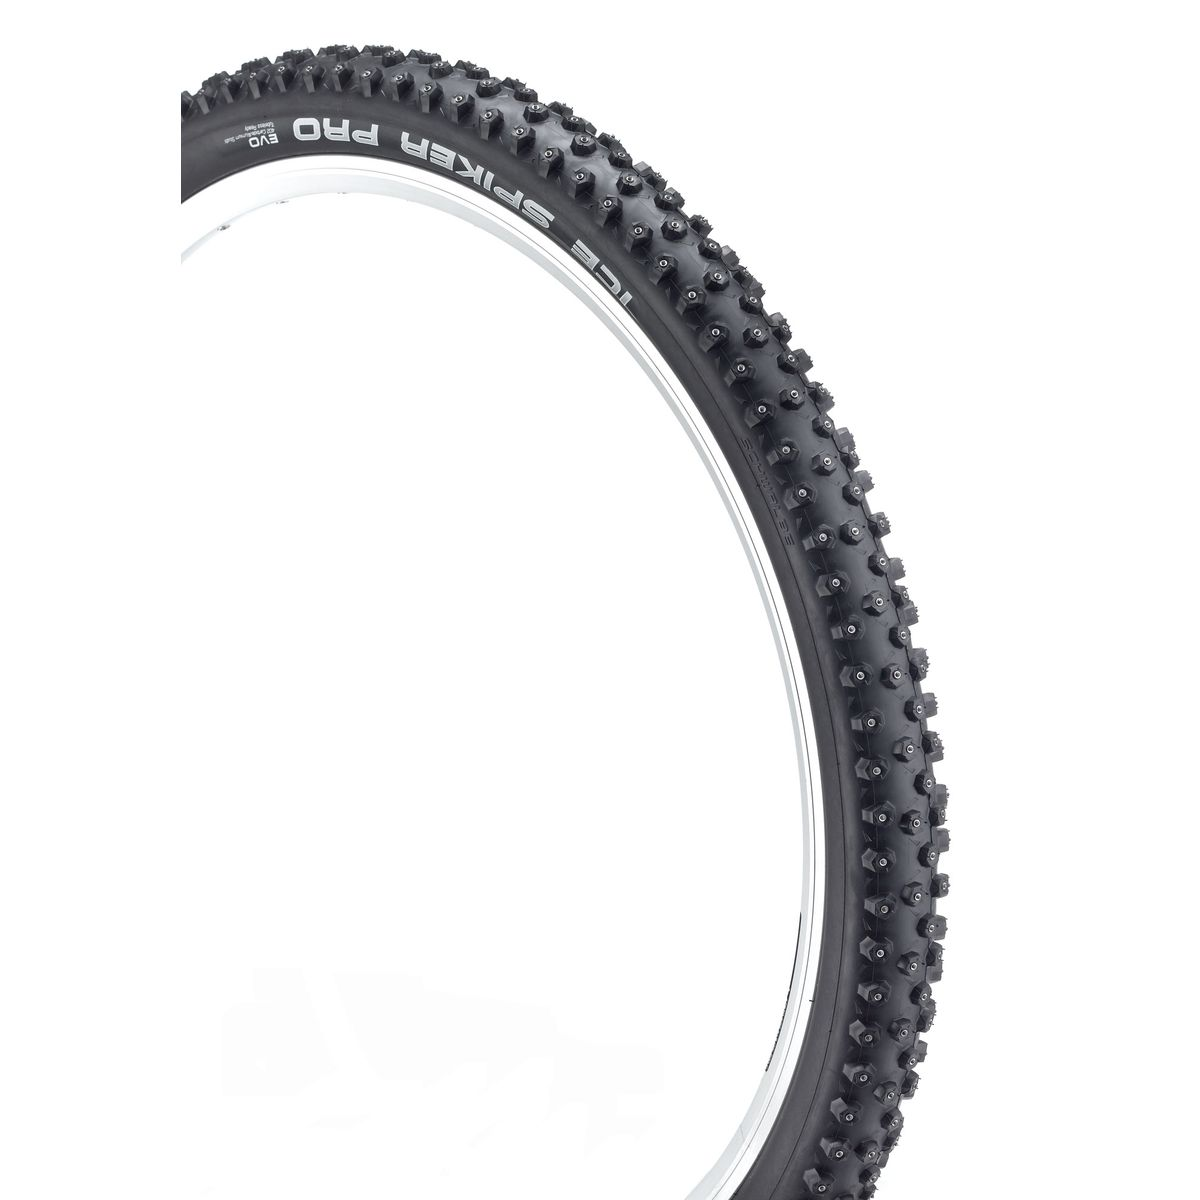 ICE SPIKER PRO Evolution spike tyre